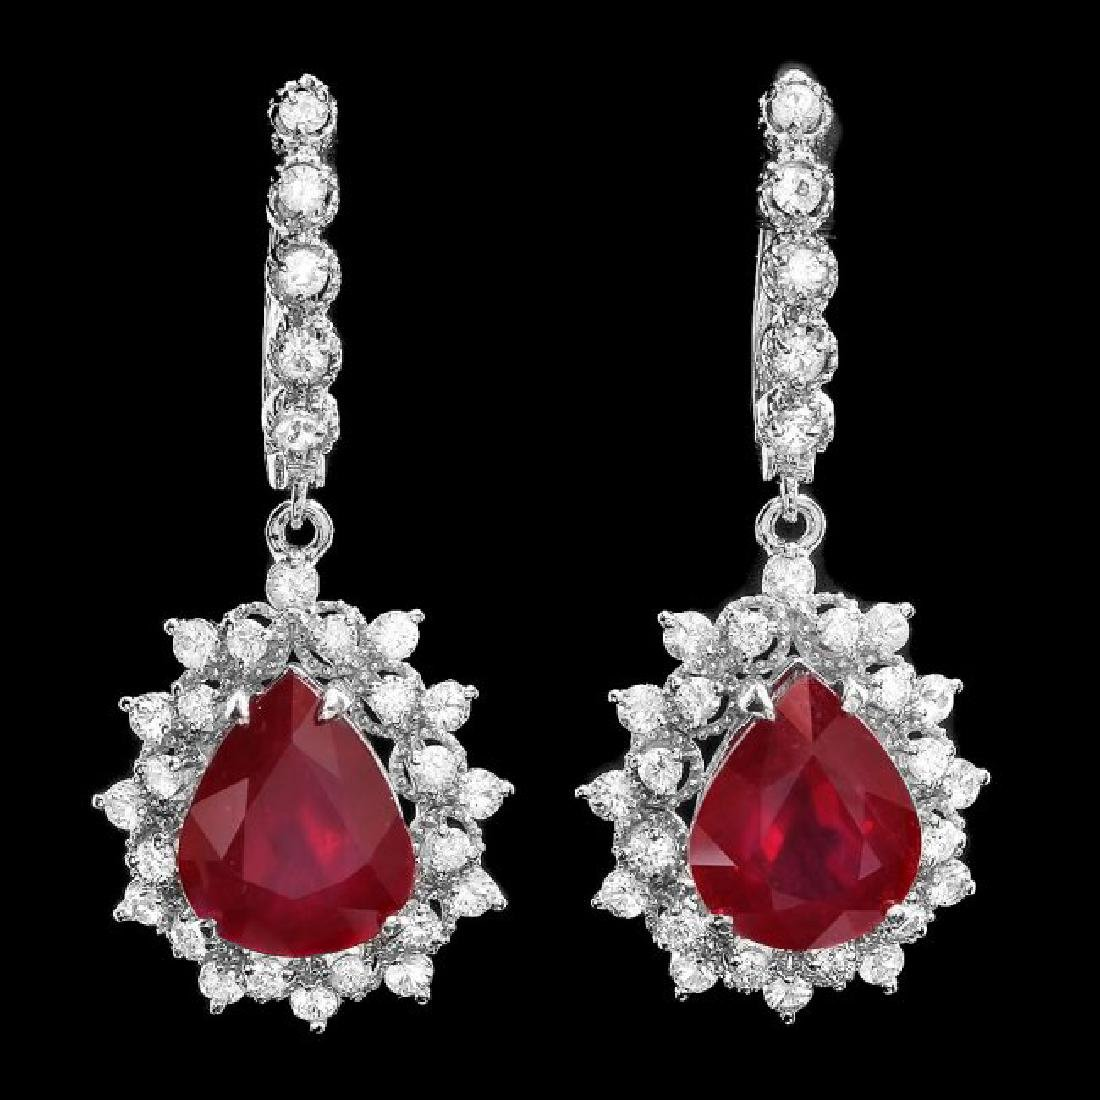 14k Gold 1.50ct Ruby 2.00ct Diamond Earrings - 2